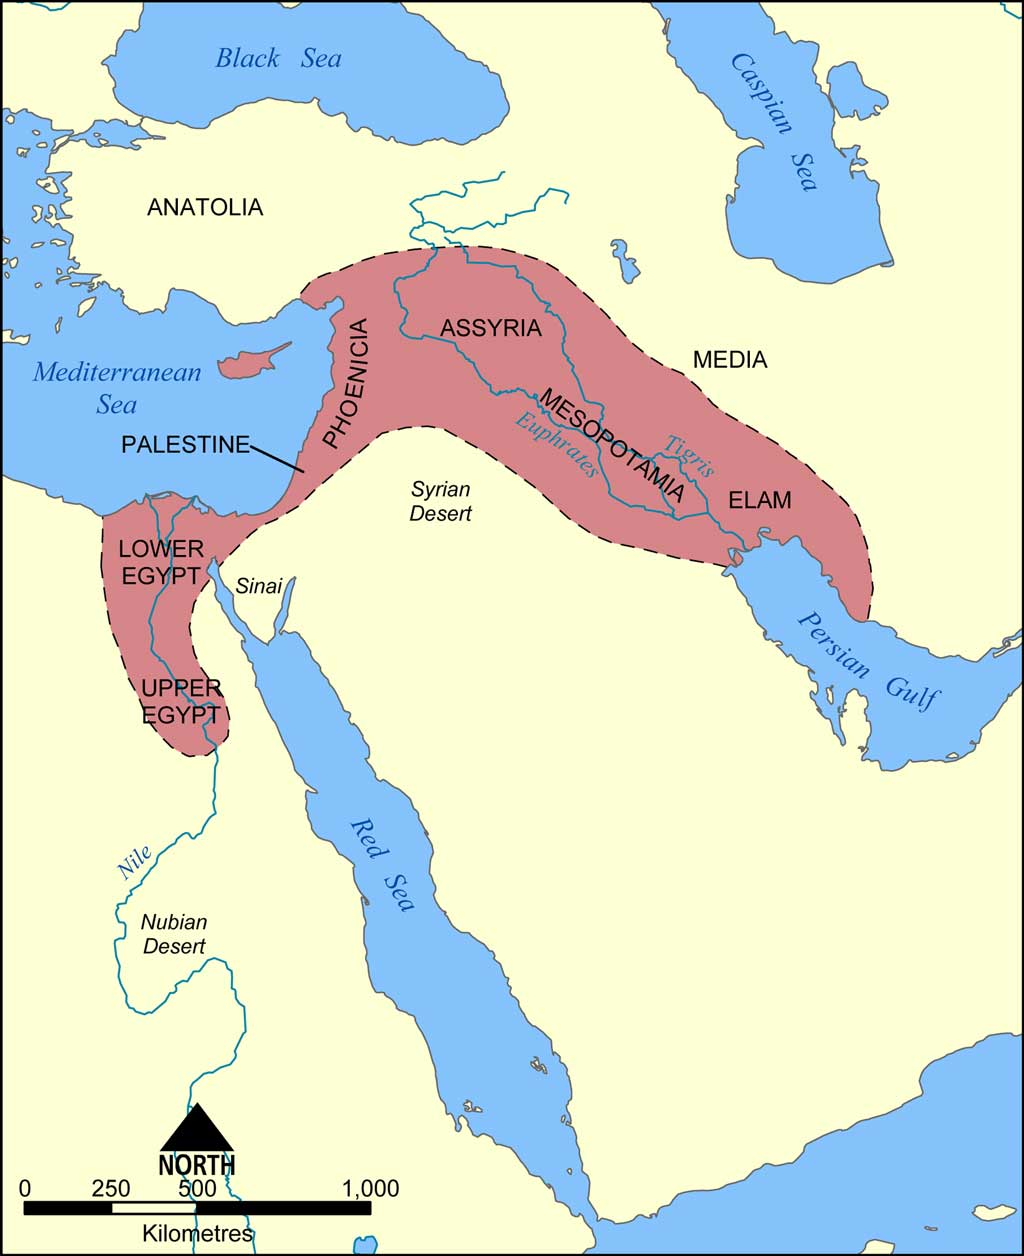 Map of the Fertile Crescent. The red zone on the map illustrates that the Fertile Crescent stretched along the Tigris and Euphrates Rivers and into Egypt.